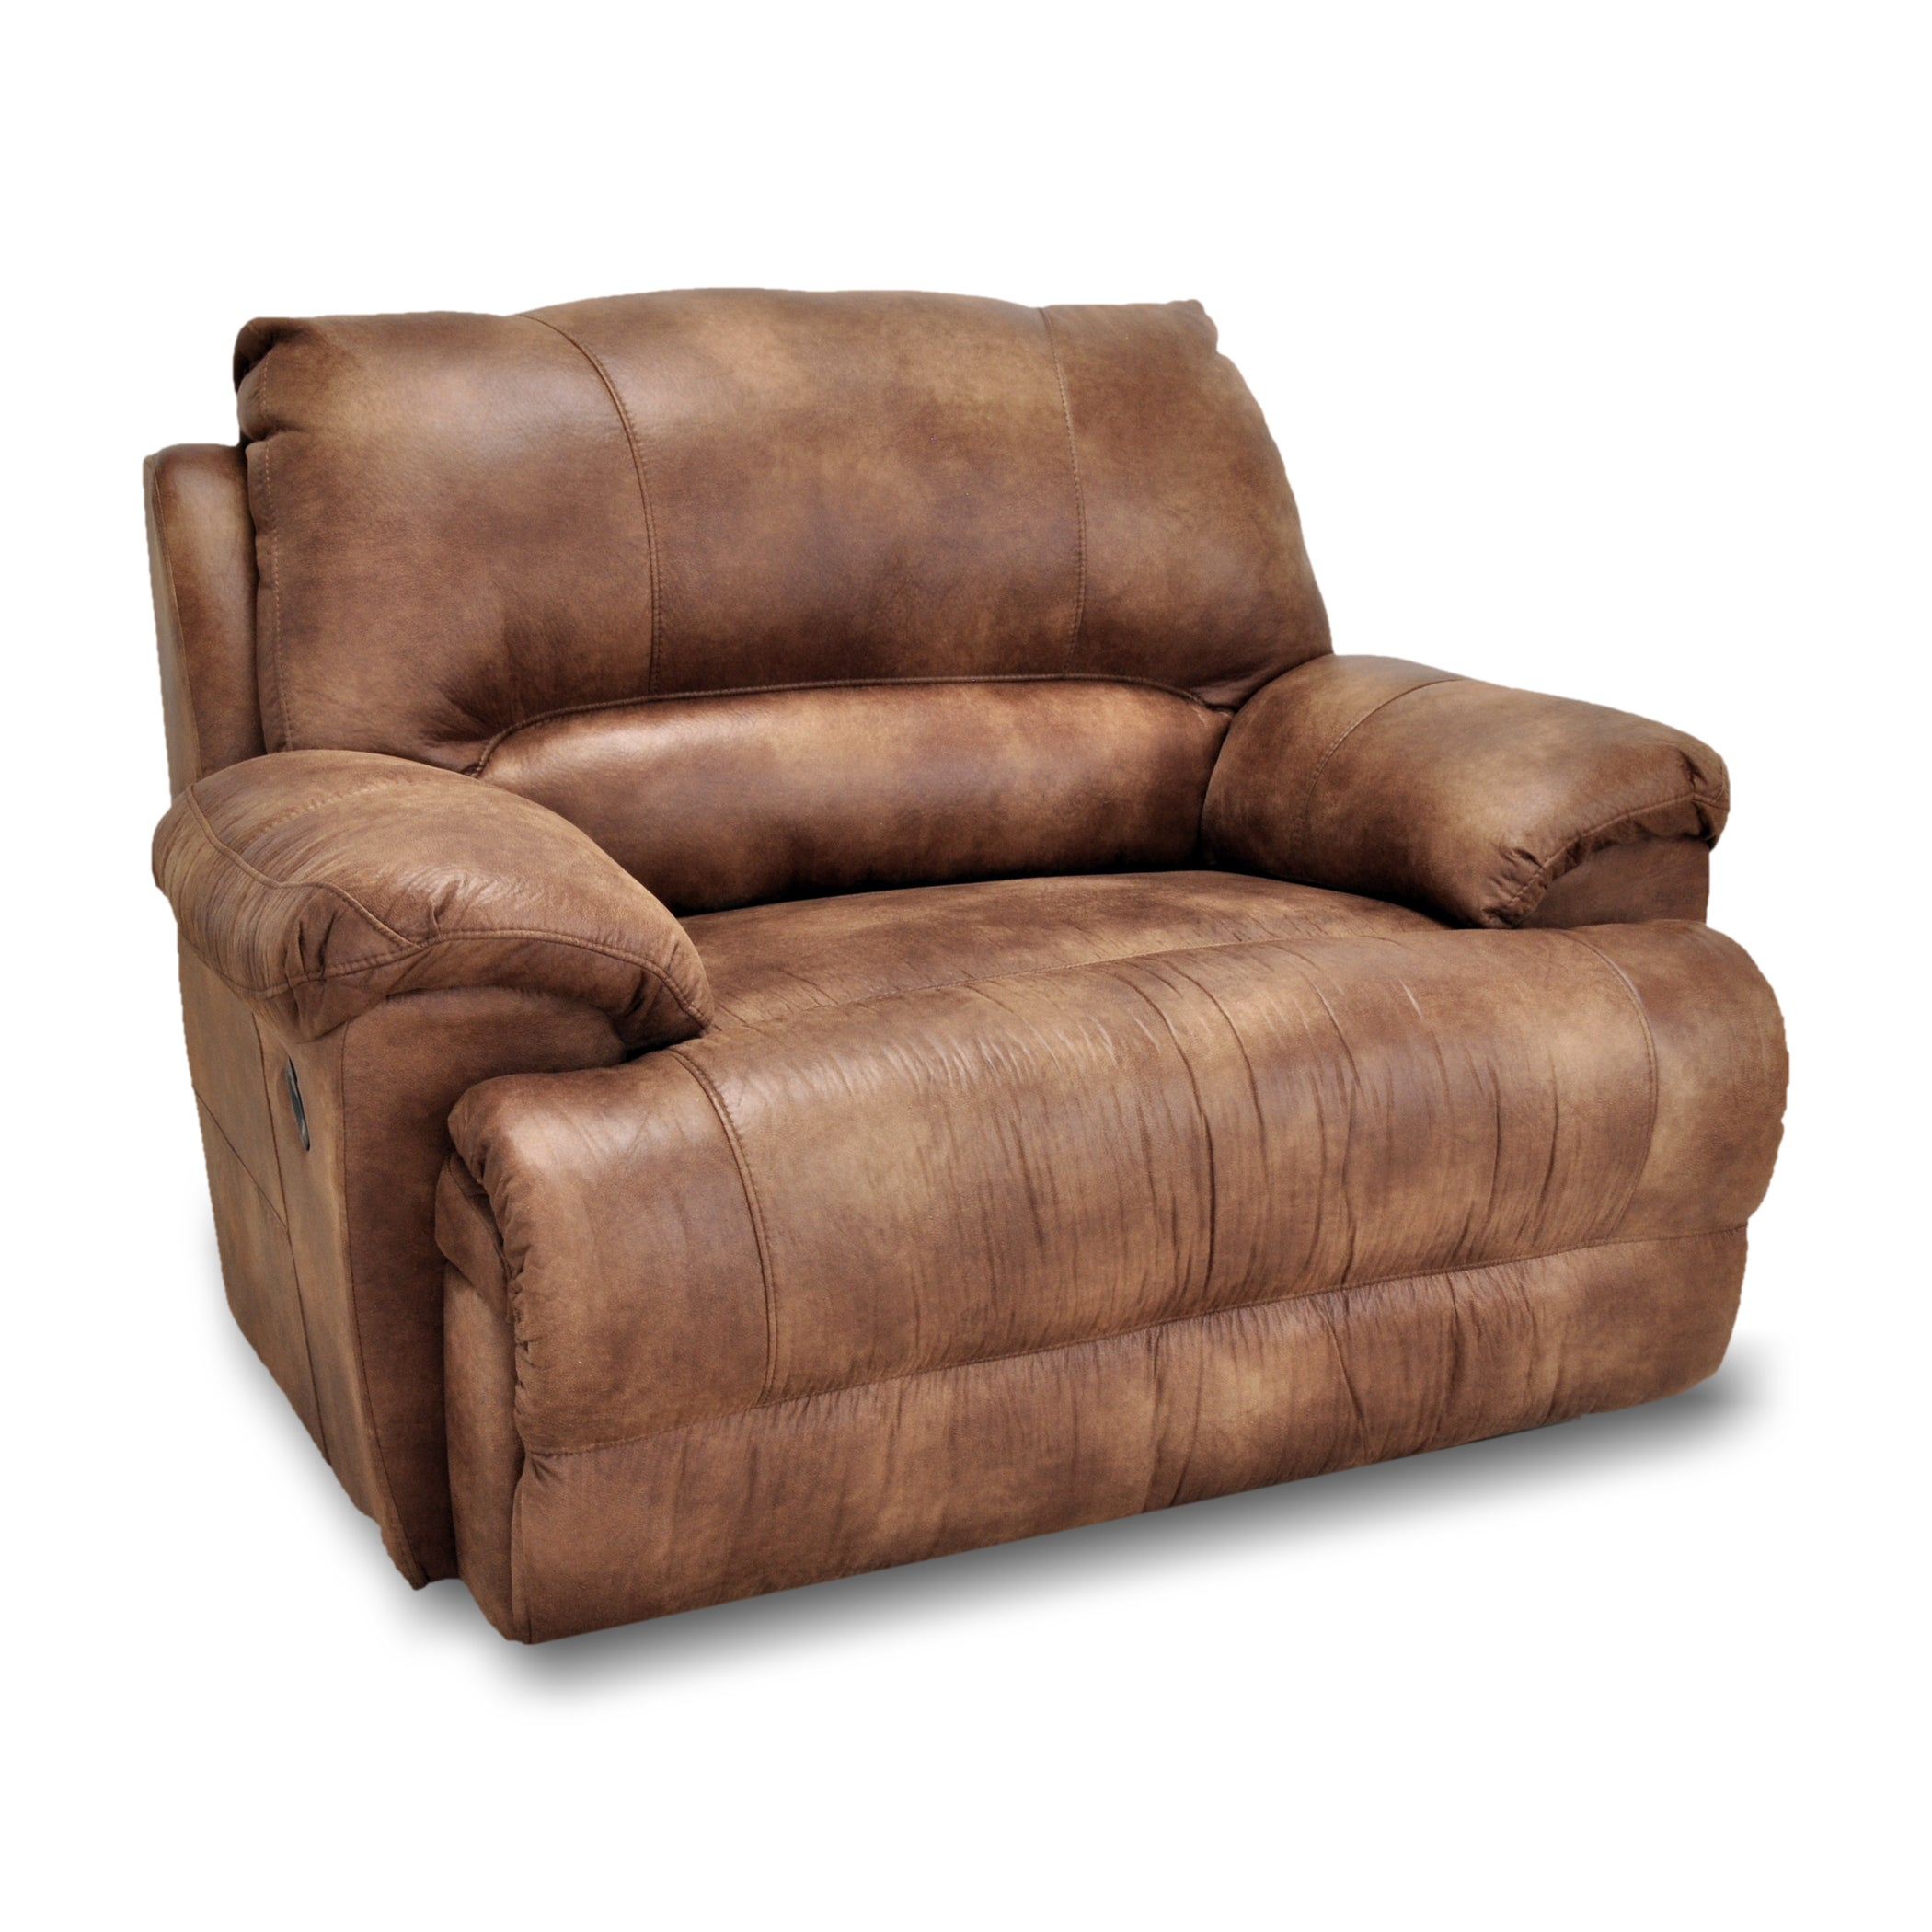 Franklin Caswell Padre Almond Chair And A Half Recliner Overstock 8650023